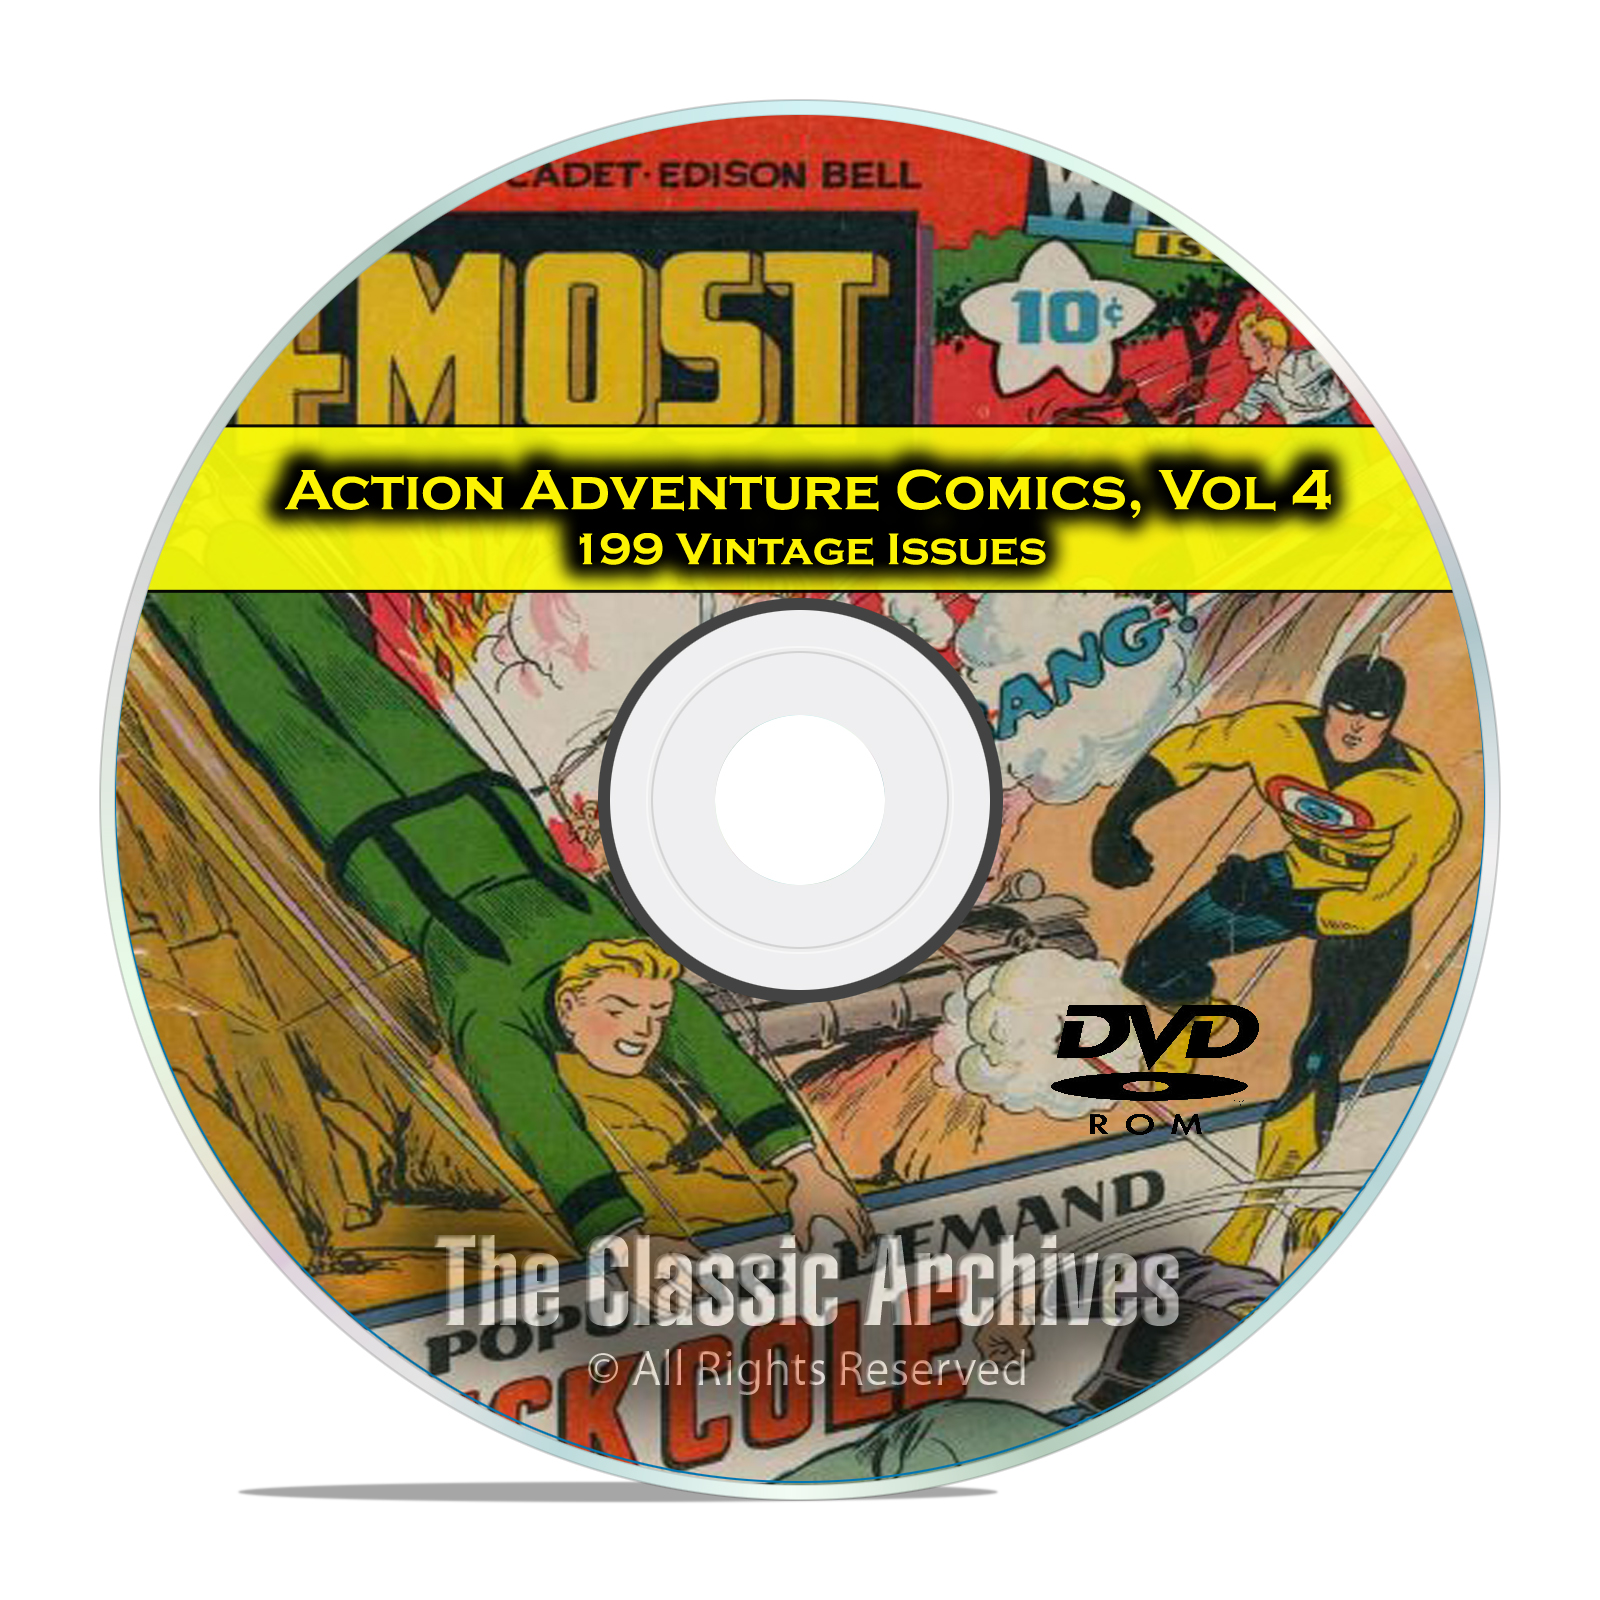 Action Adventure Comics Vol 4, Blue Bolt Picture News 4 Most Golden Age DVD